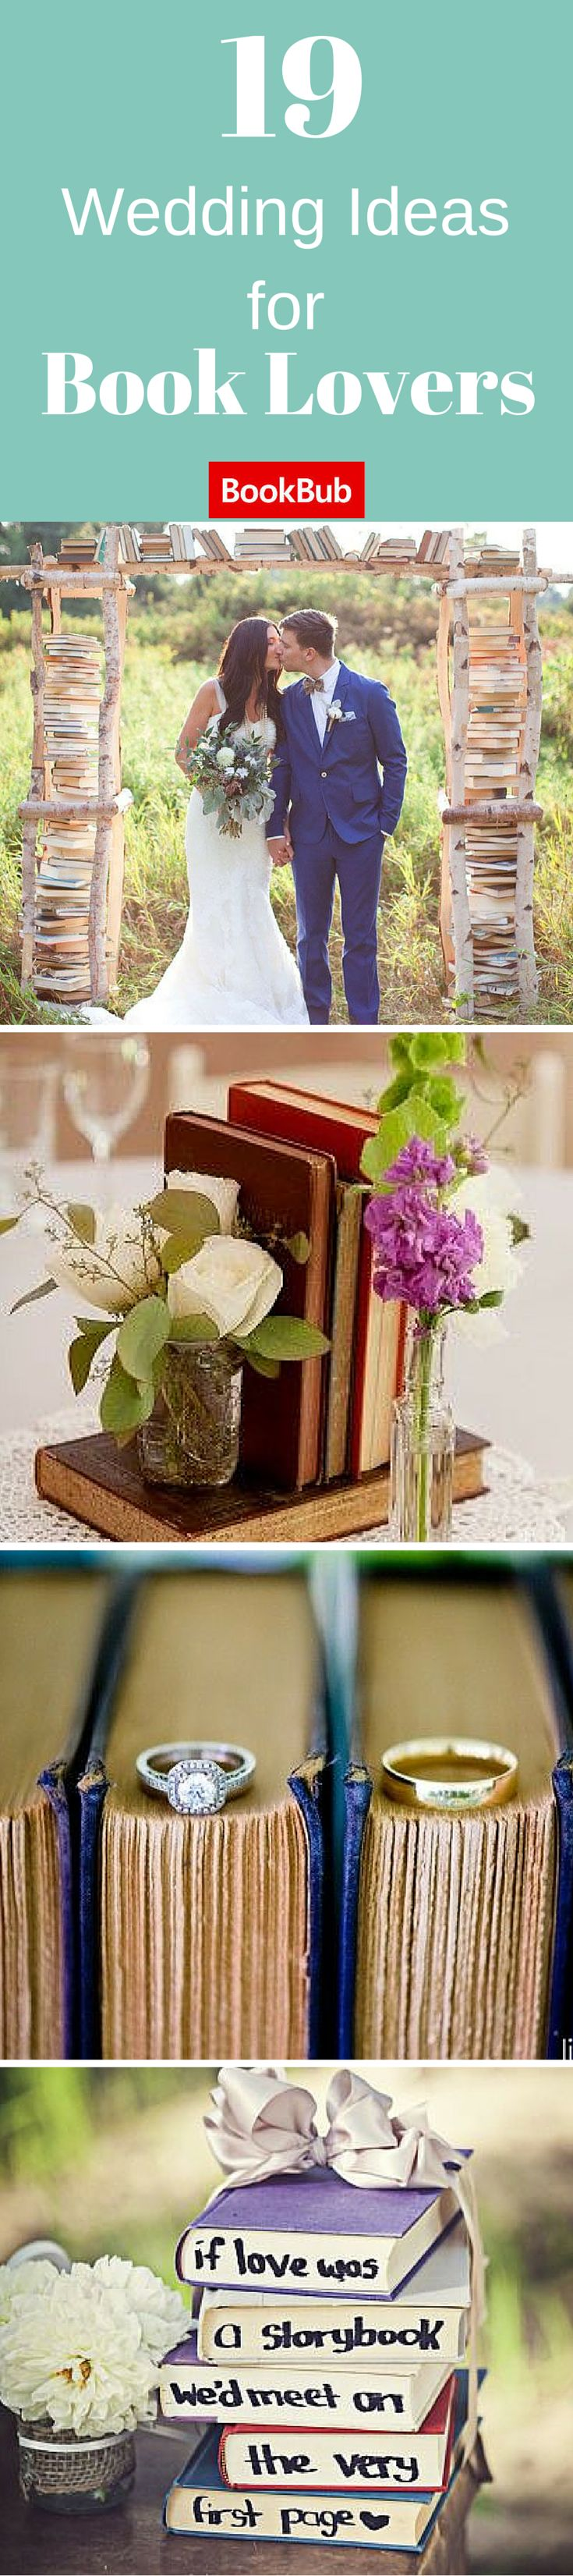 Adorable ways to use books in your wedding!